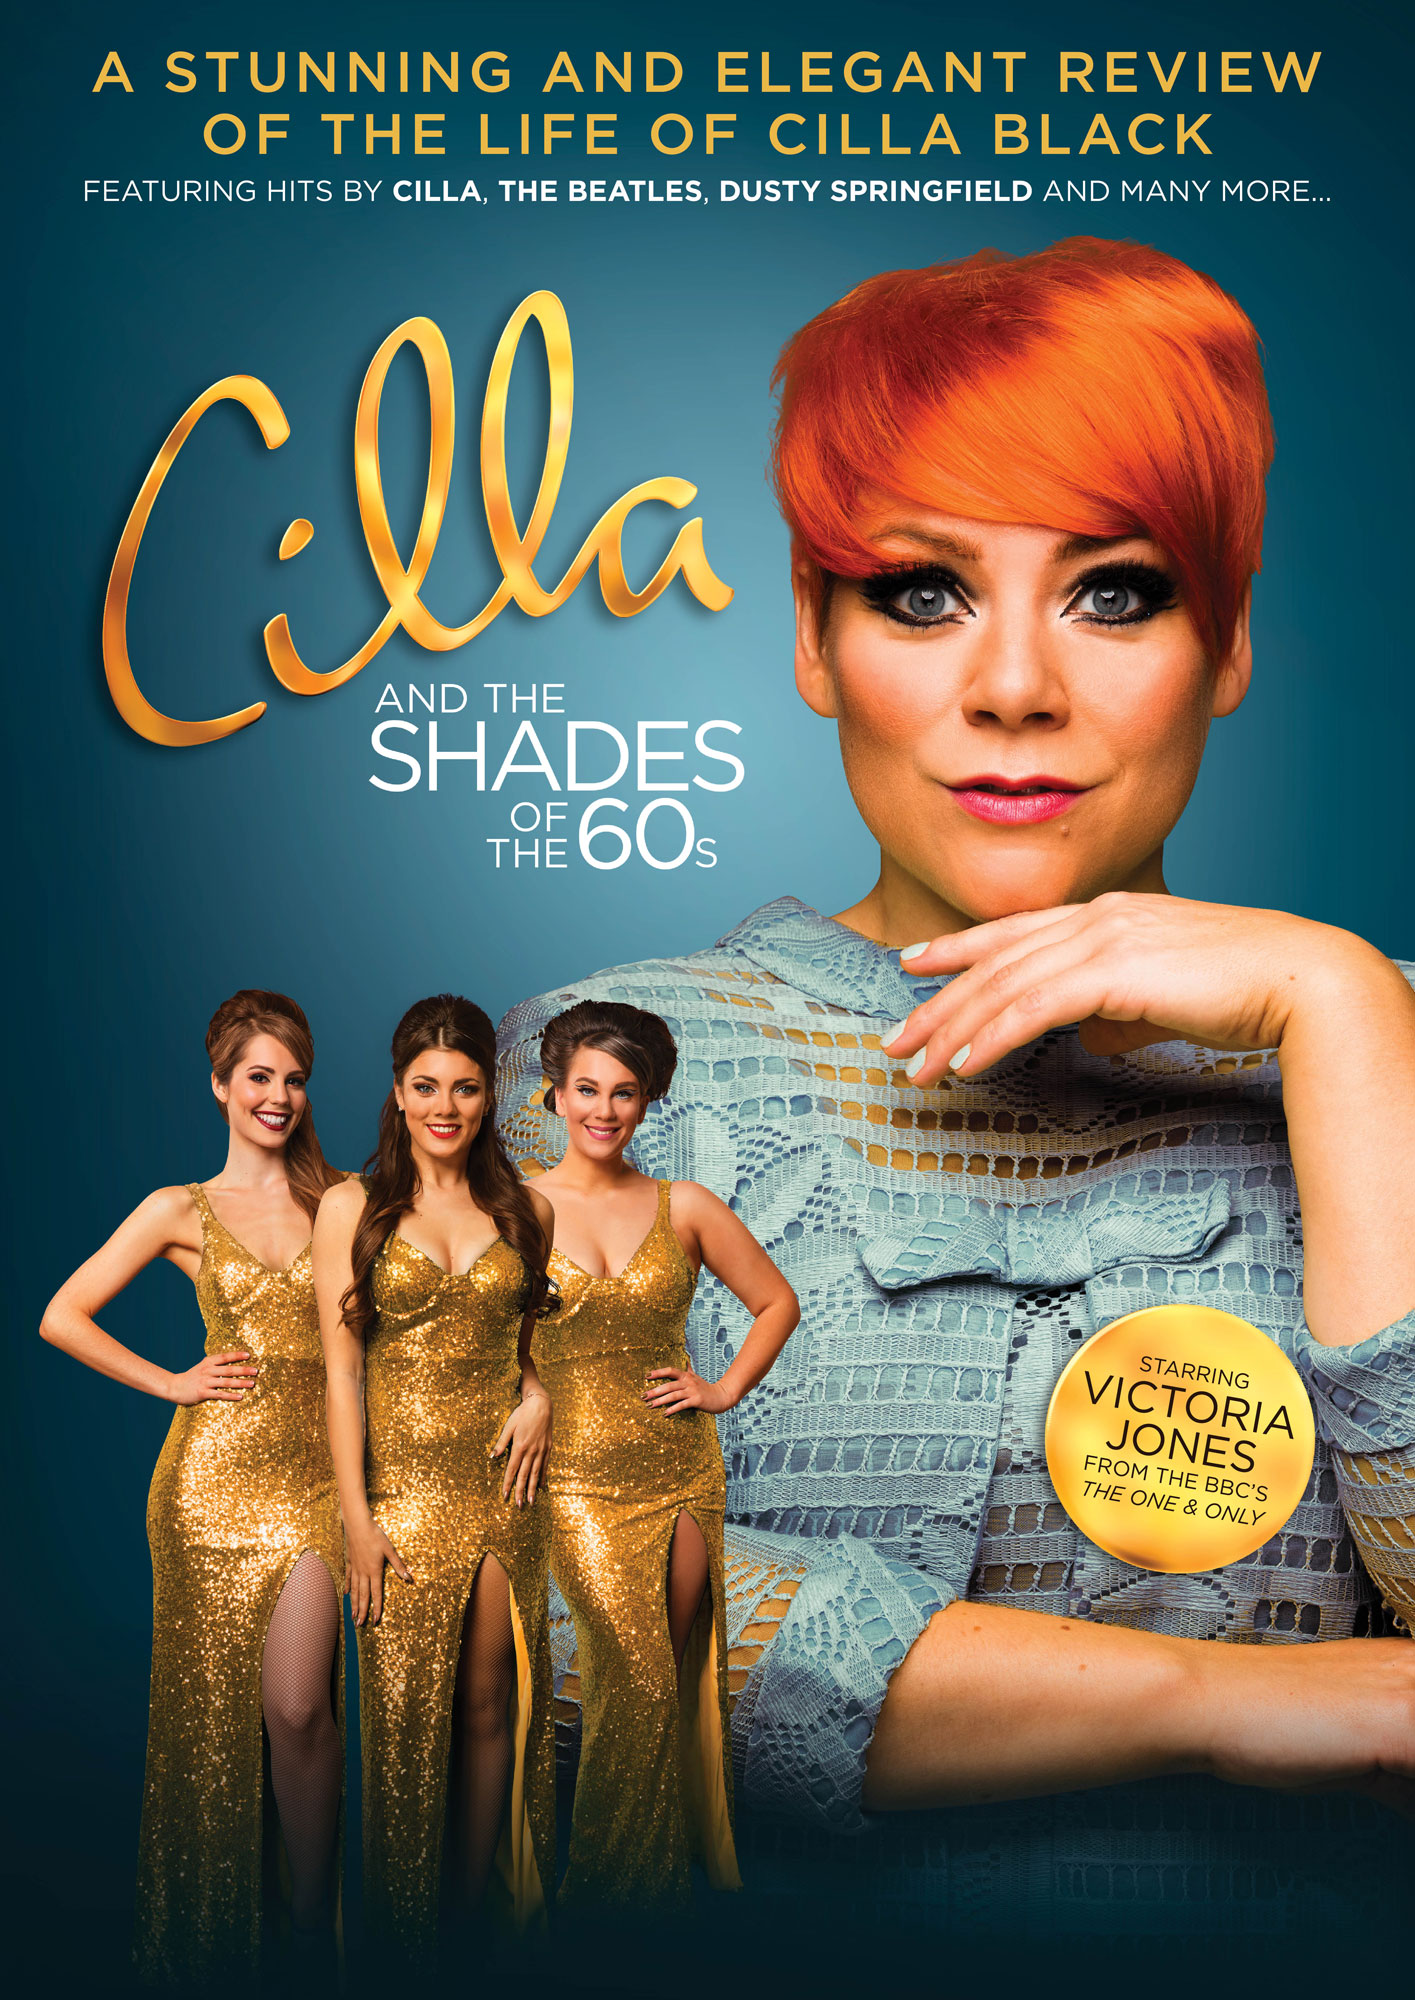 Cilla and the Shades of the 60's